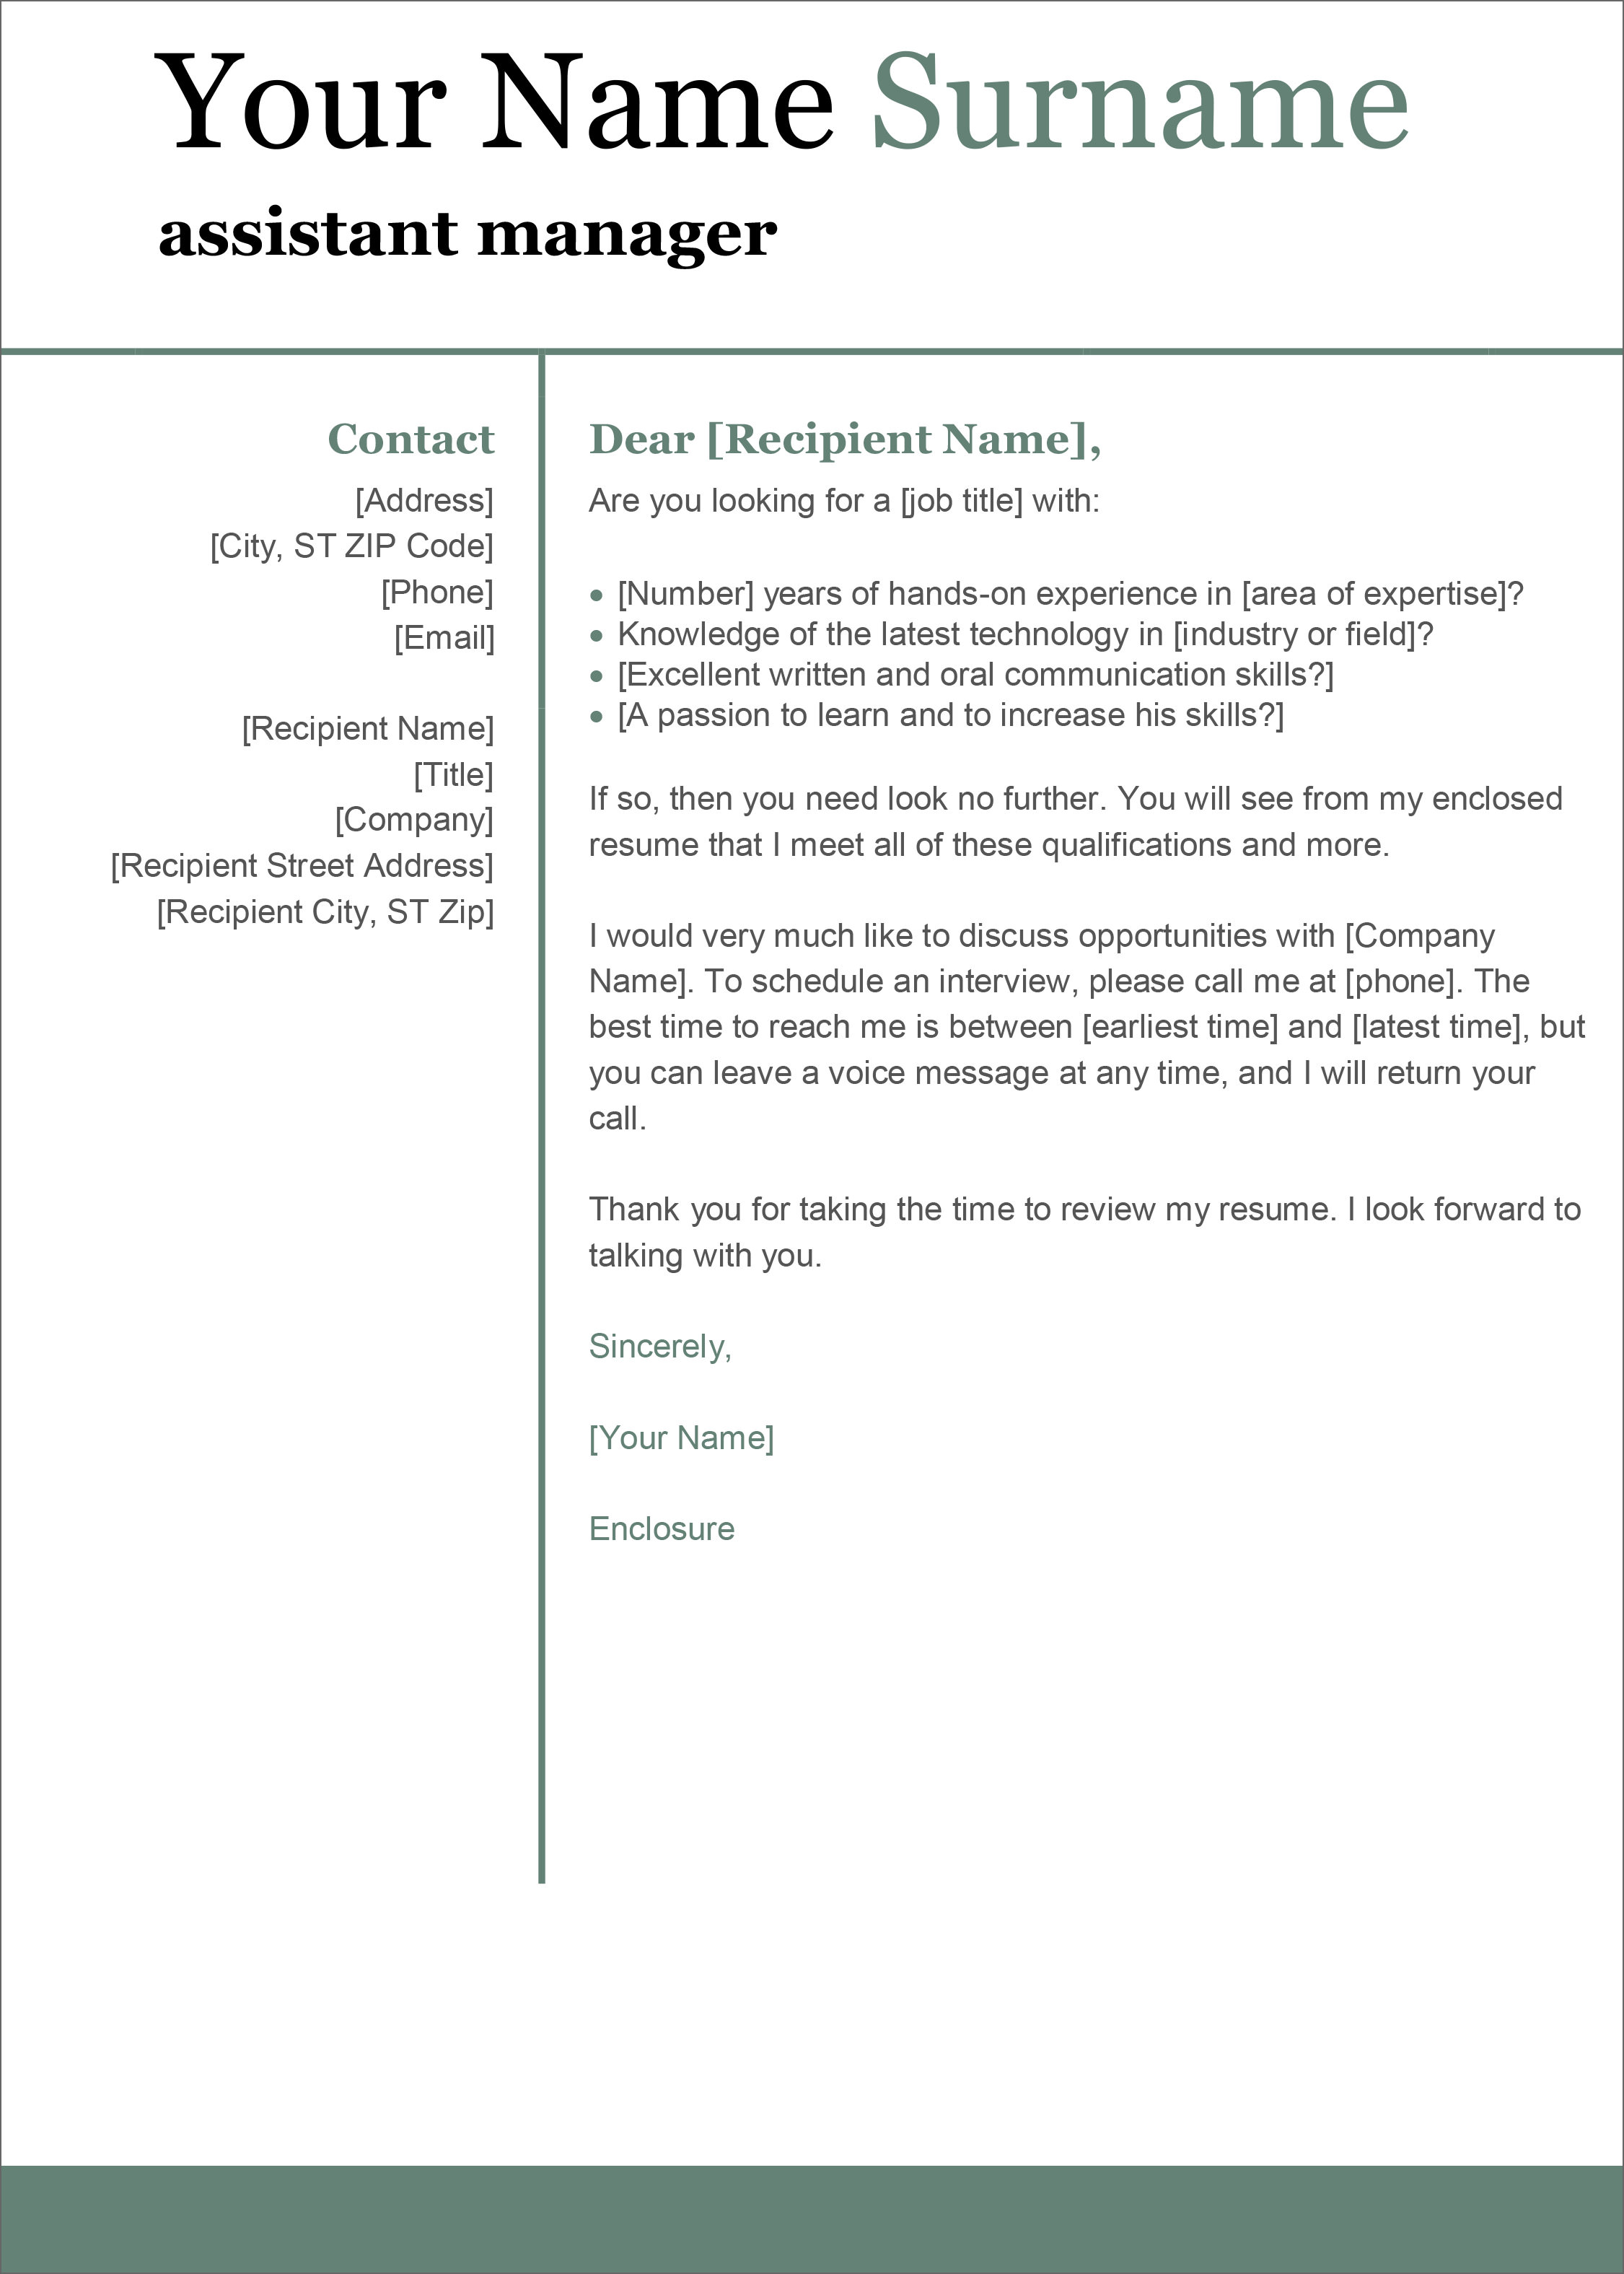 a letter template for word  12 Free Cover Letter Templates For Microsoft Word Docx And ...